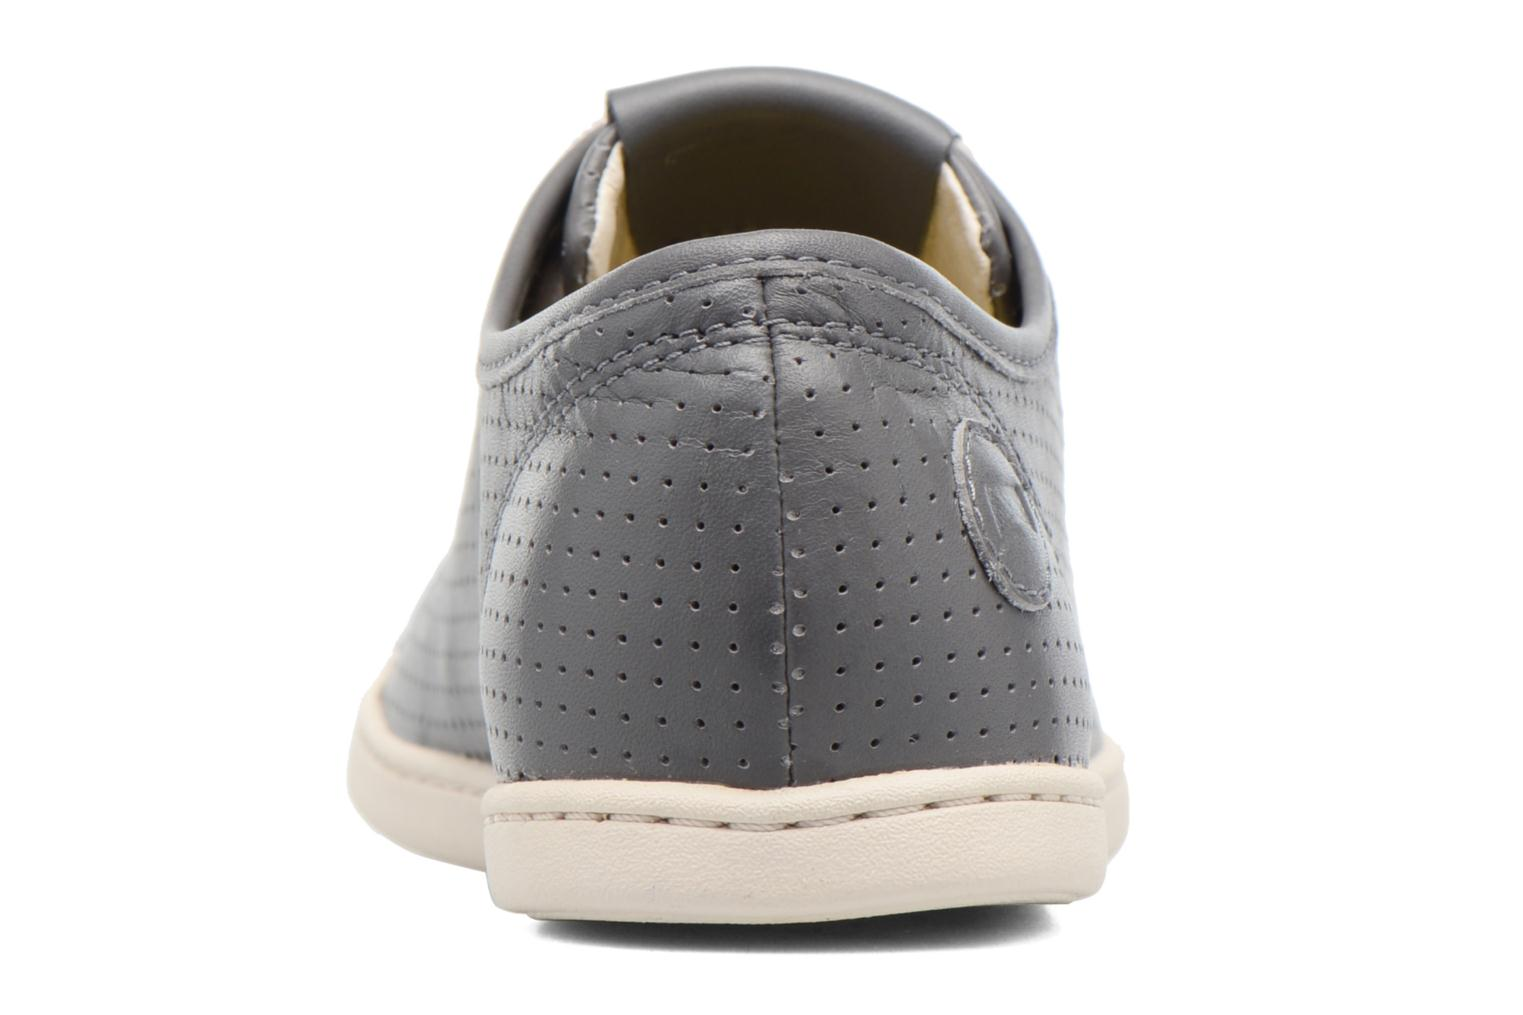 Uno 21815 Supersoft Moore Perforated/Uno Pau